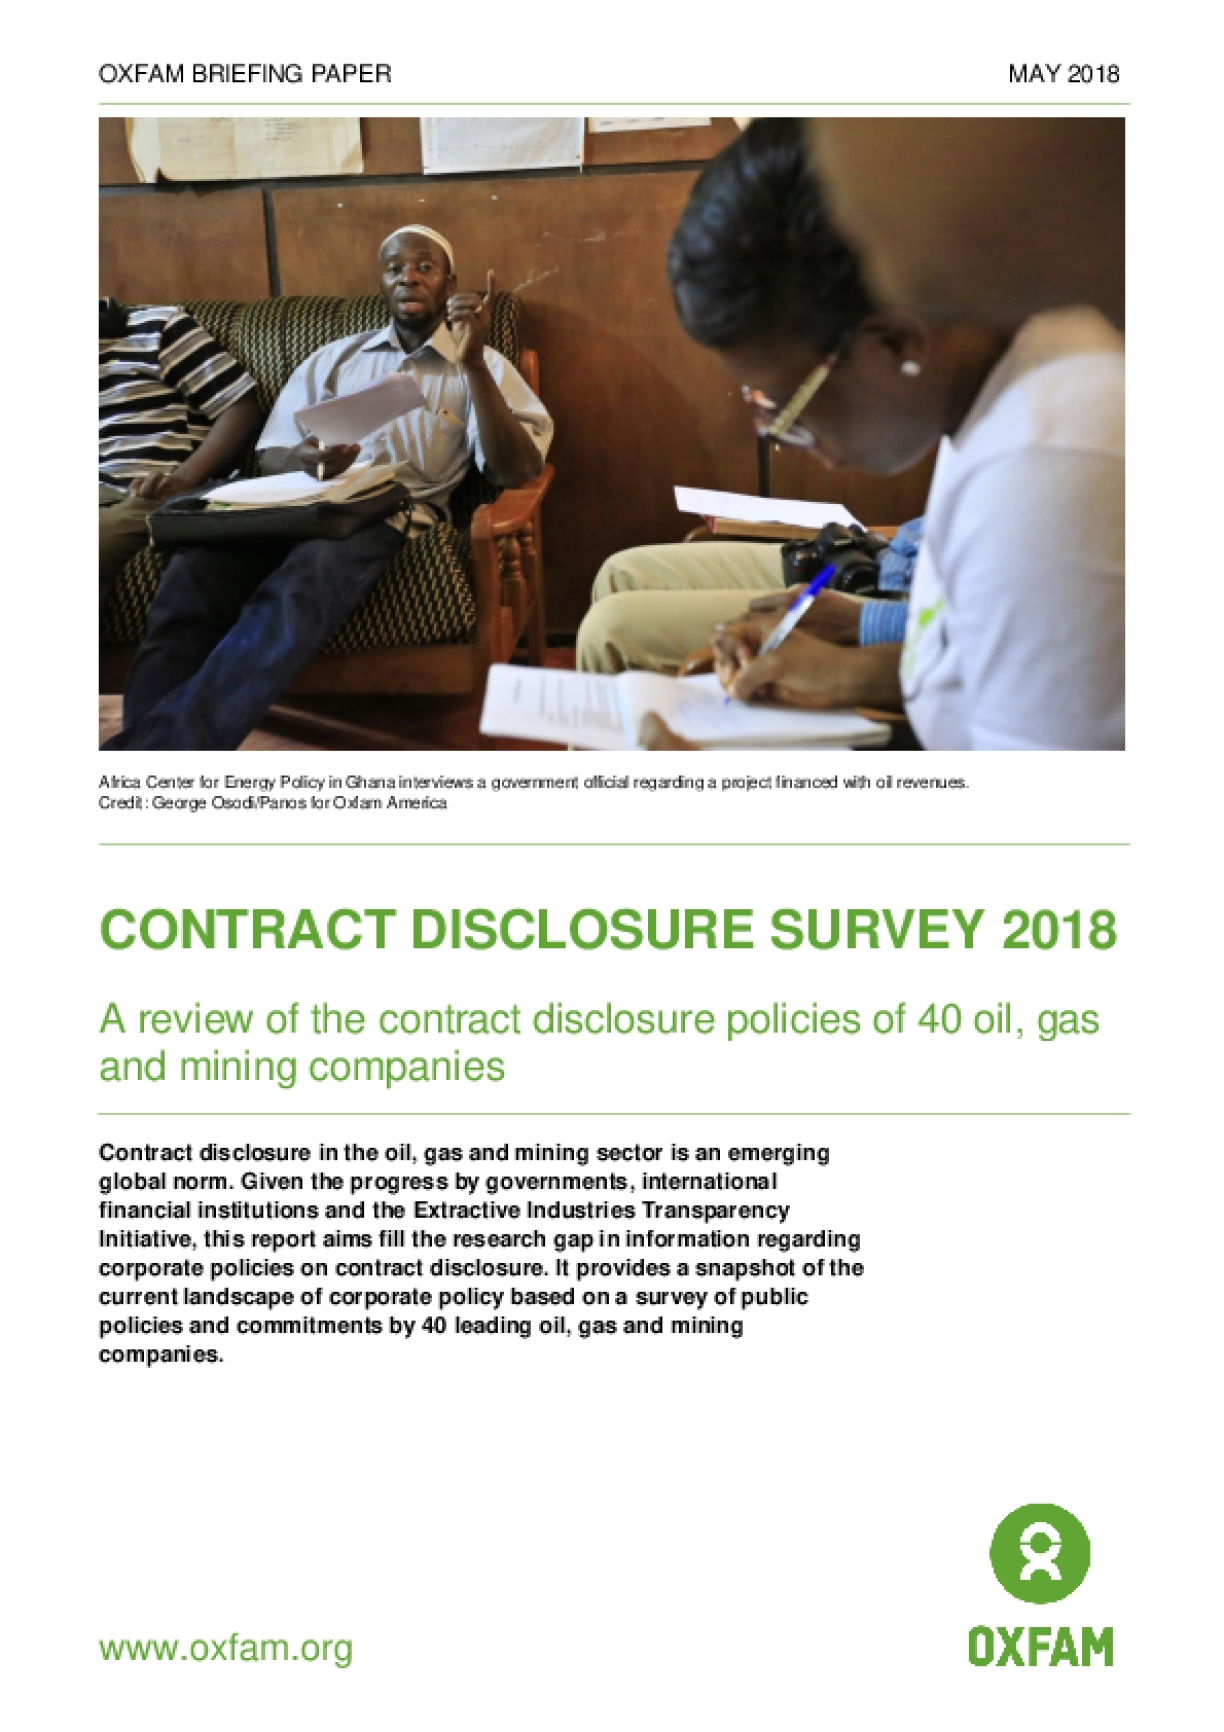 Contract Disclosure Survey 2018: A Review of the Contract Disclosure Policies of 40 Oil, Gas and Mining Companies